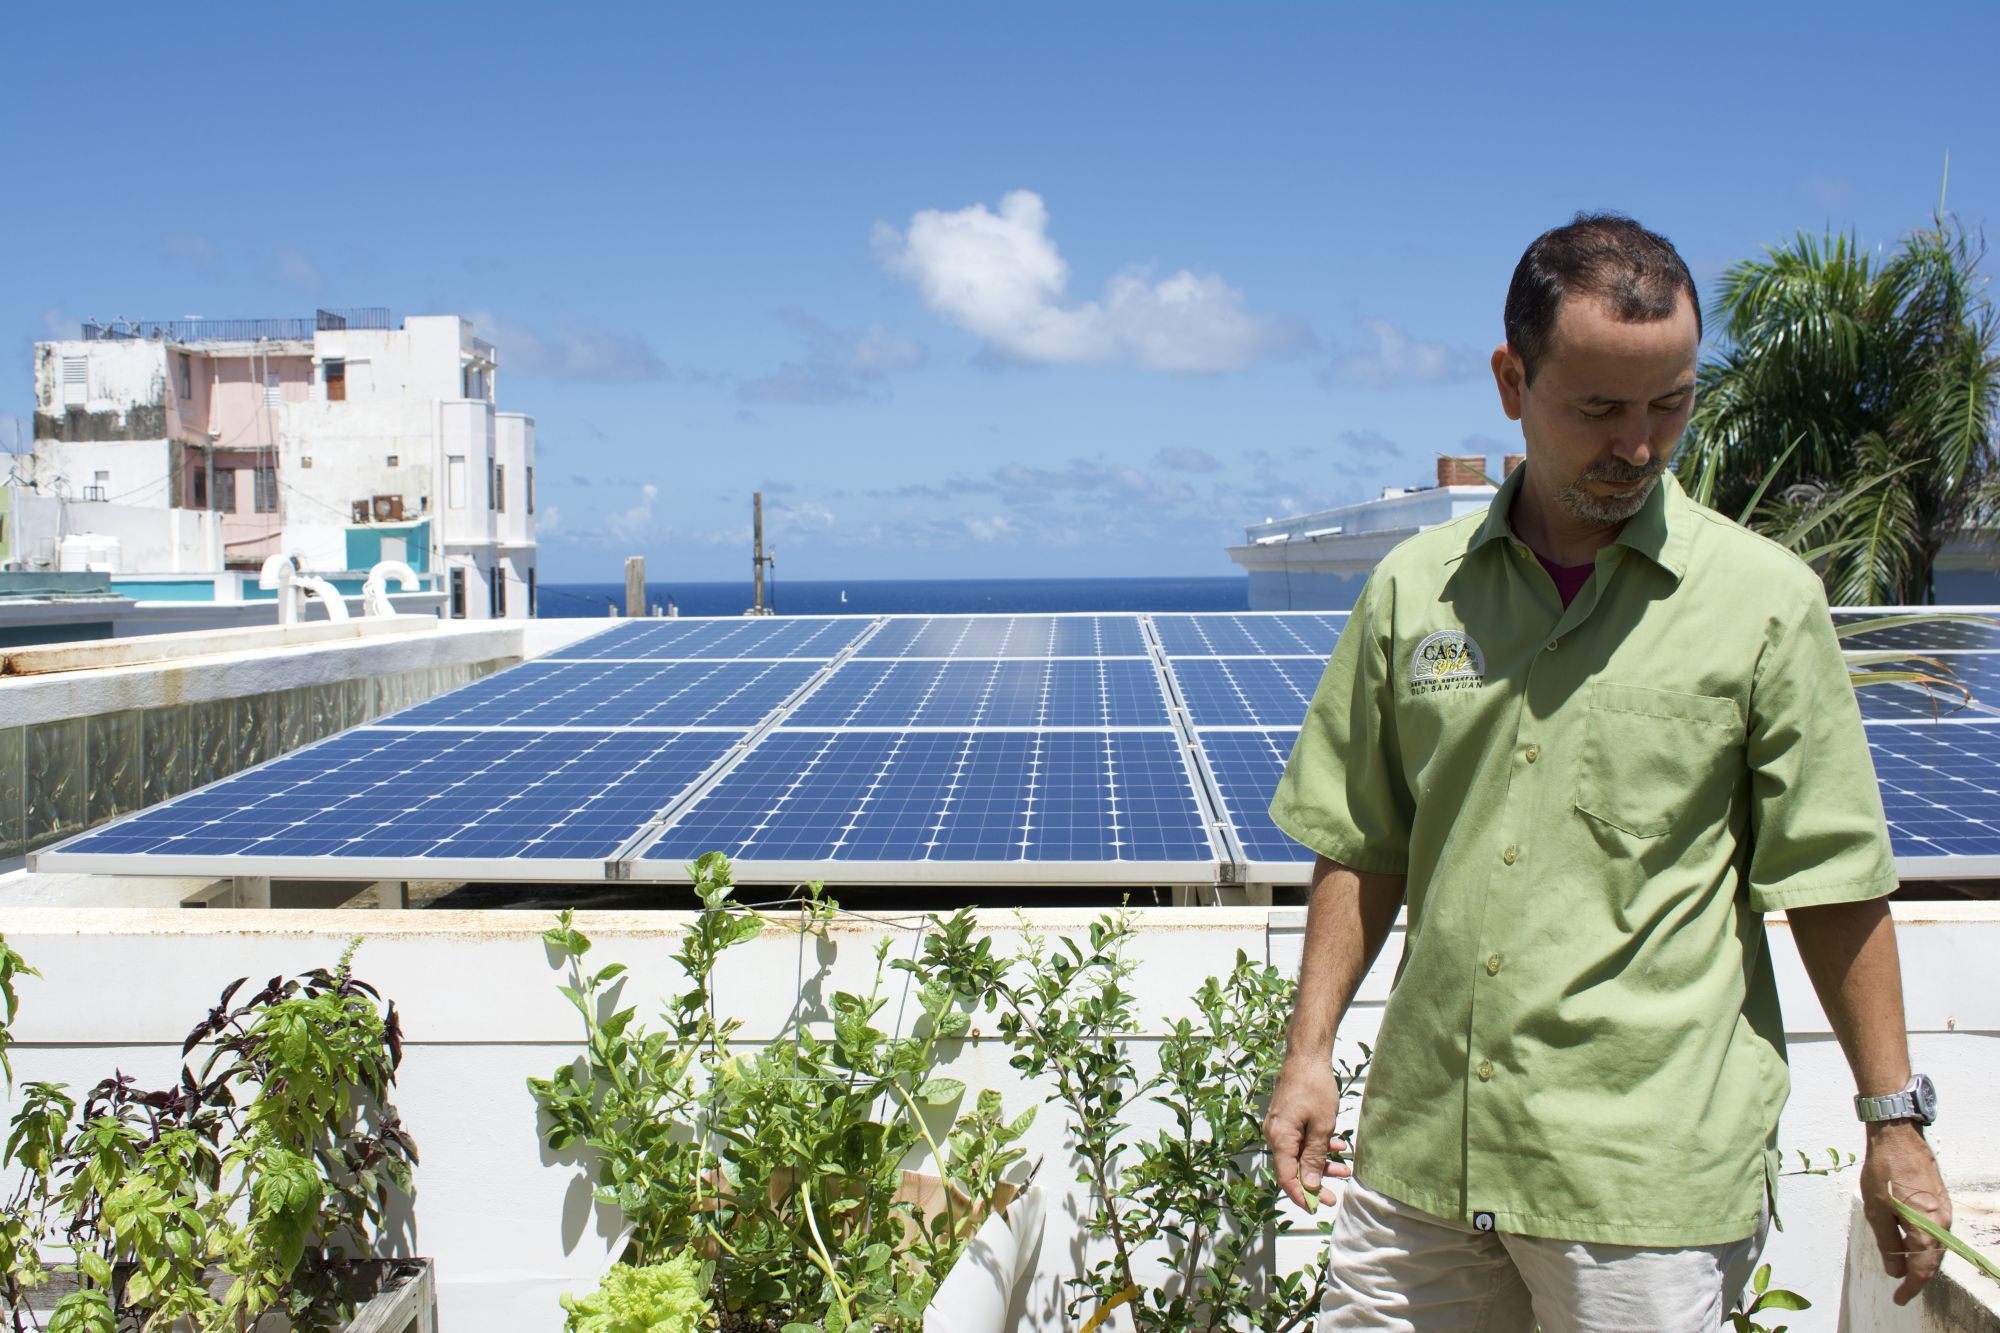 © Marie Fazio: Ramirez with his solar panels on the roof of Casa Sol.